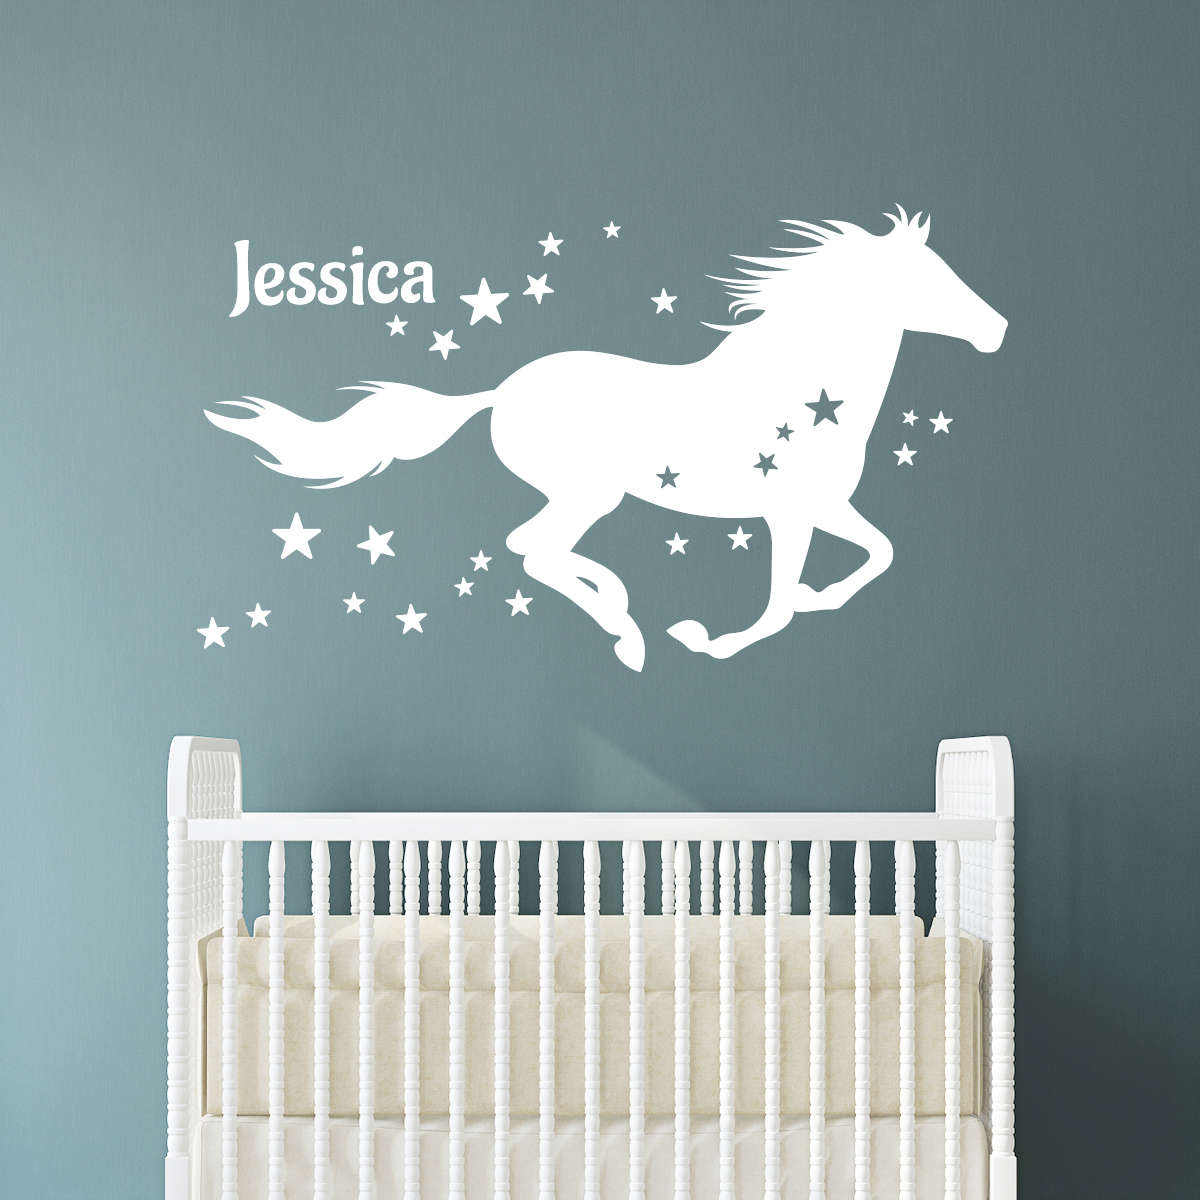 sticker pr nom personnalis et le cheval toil animaux chevaux ambiance sticker. Black Bedroom Furniture Sets. Home Design Ideas